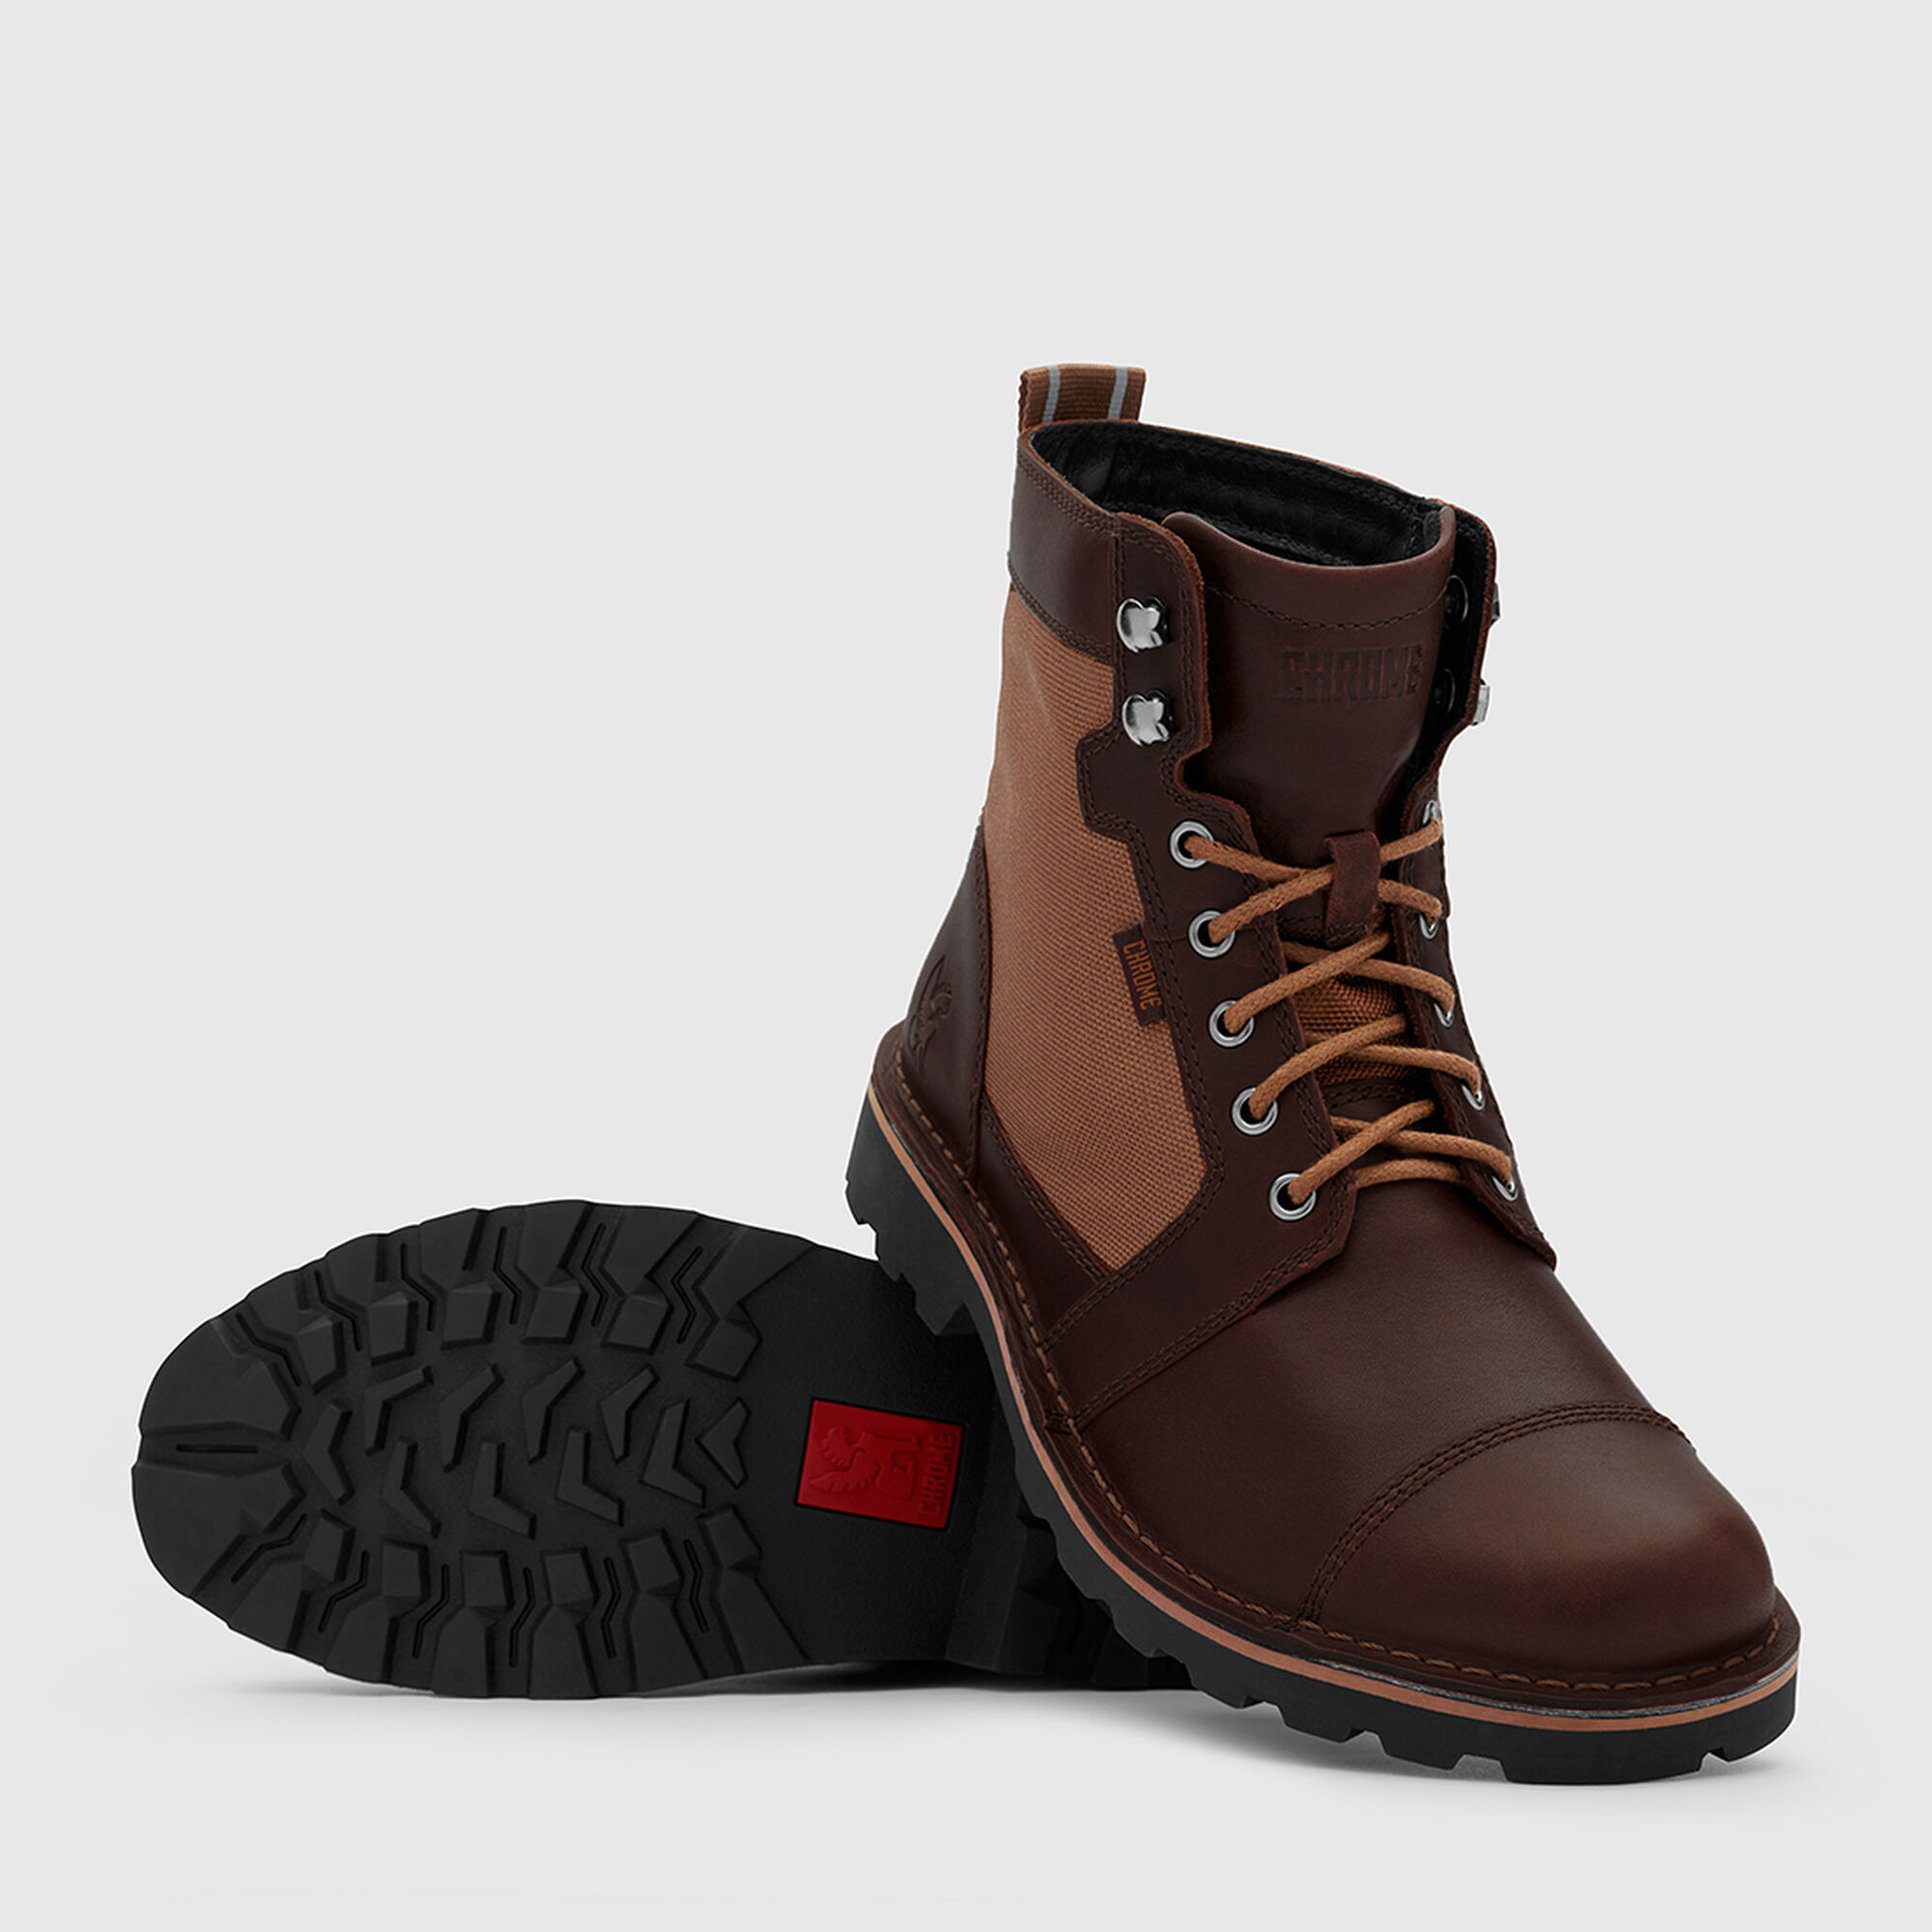 503 Combat Boot - Tough Kicks | Chrome Industries